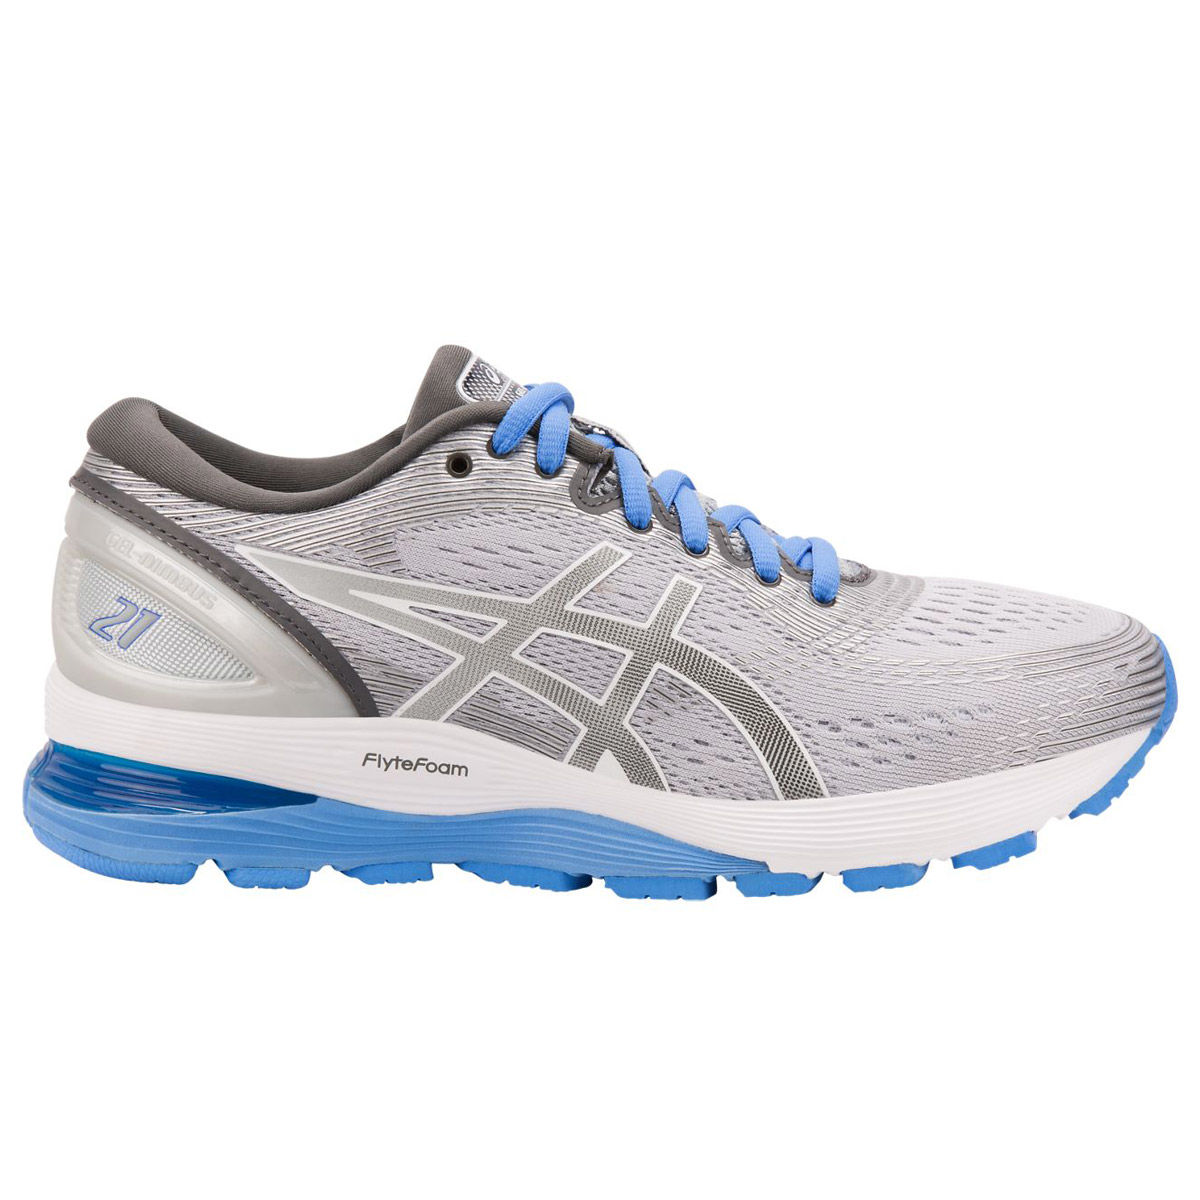 ASICS GEL-Nimbus 21 Womens Running Shoe